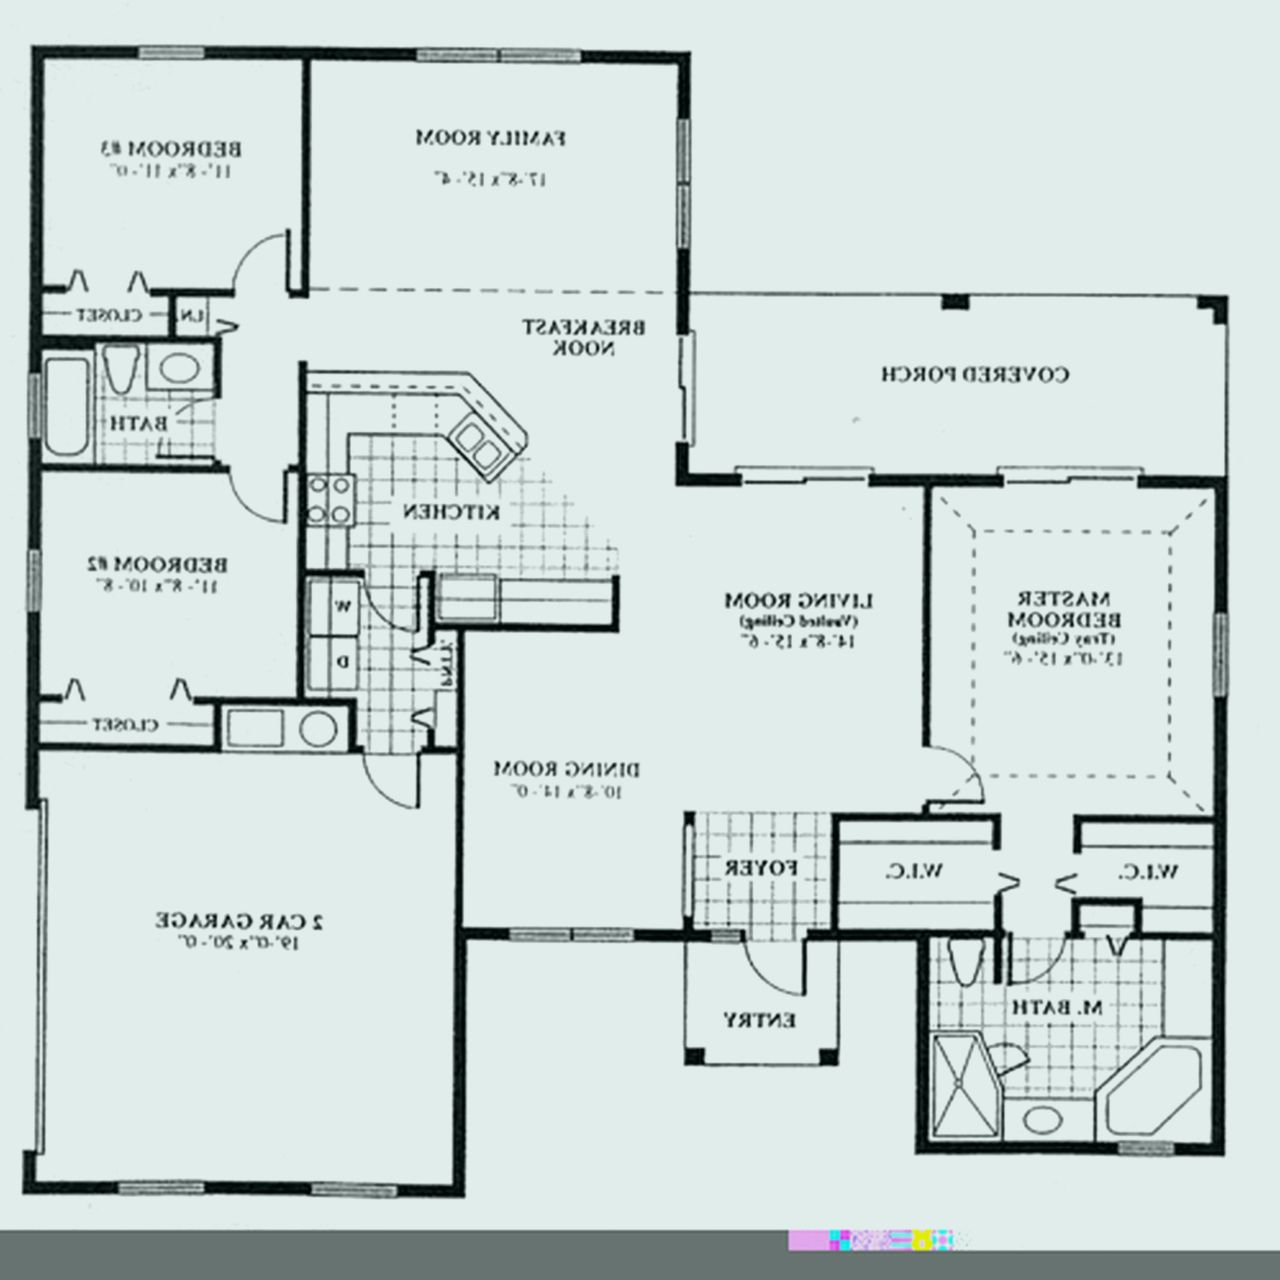 28 House Floor Plan Generator 2019 Floor Plan Design Barn Homes Floor Plans Drawing House Plans